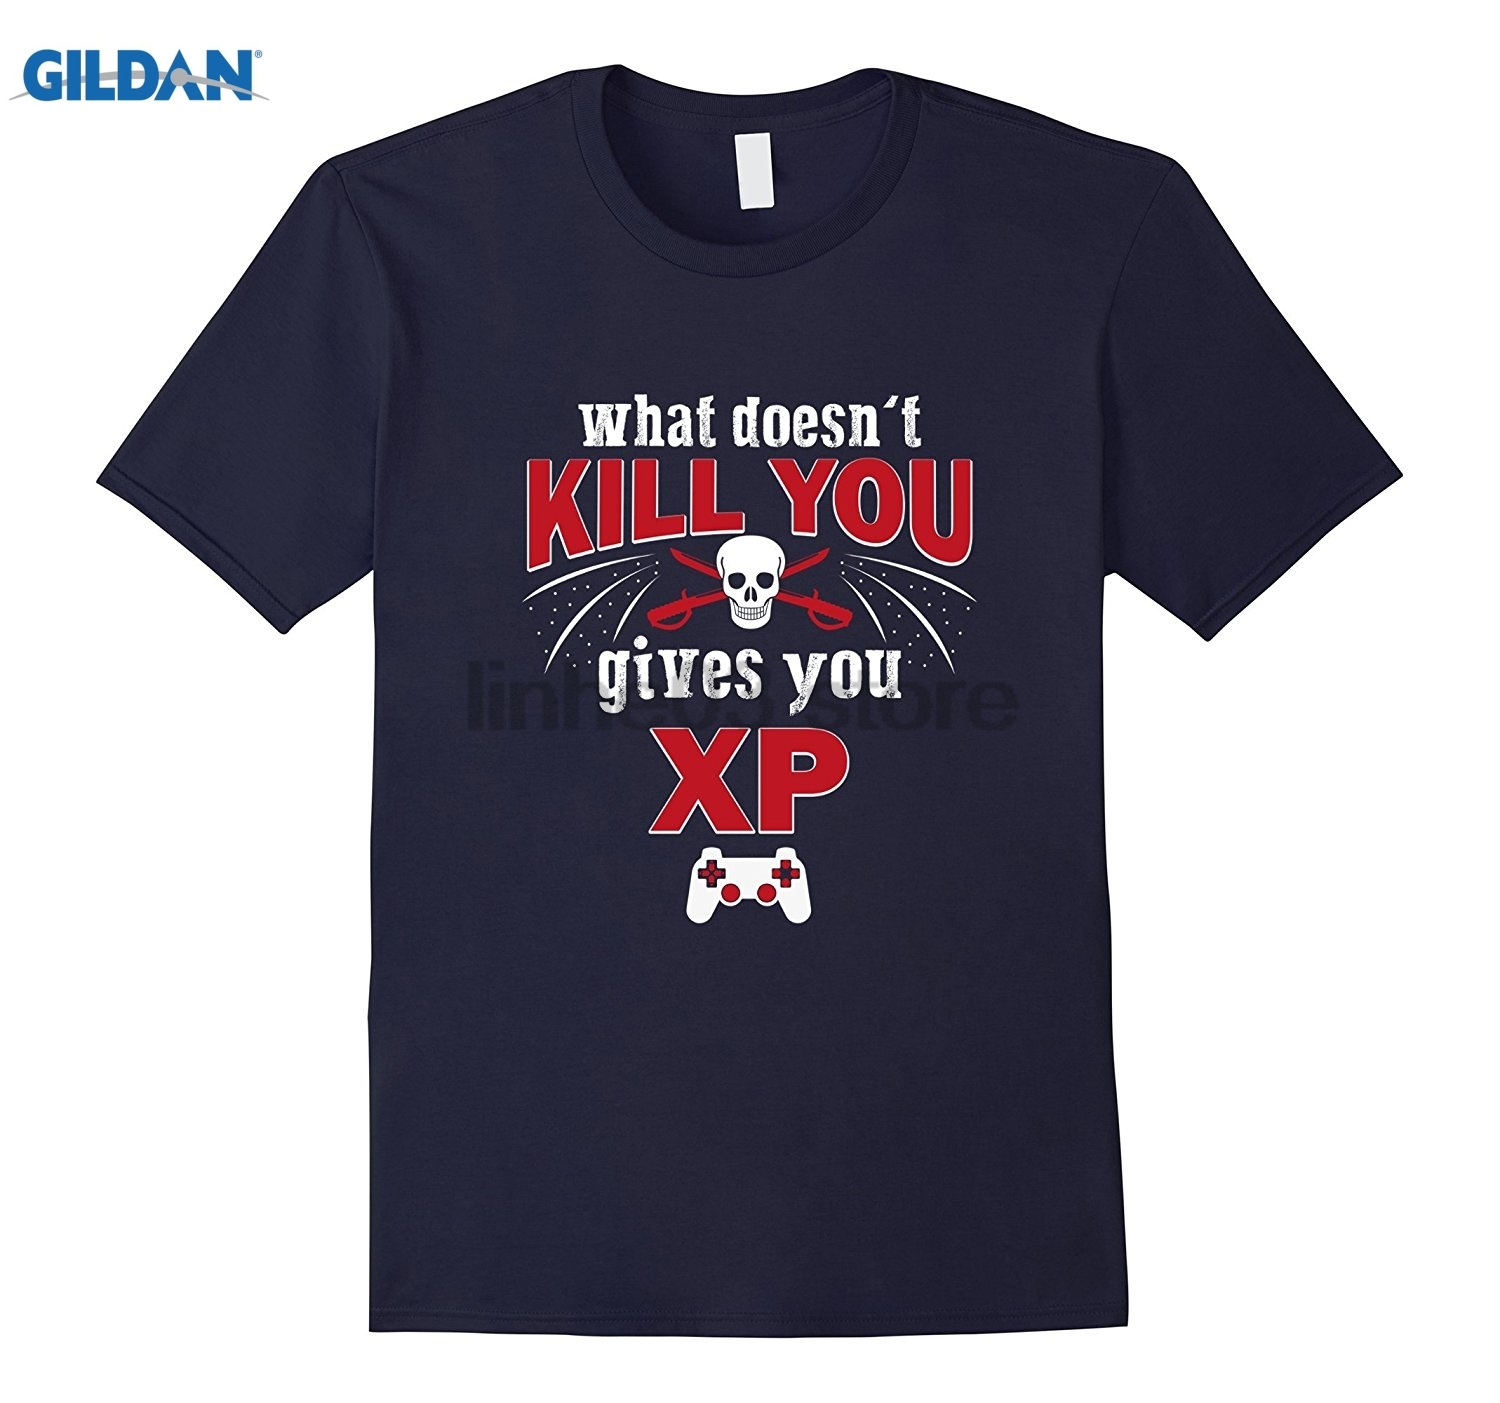 GILDAN Funny Roleplaying Gamer Geek T-shirt - Gamer Tee Gift Hot Womens T-shirt